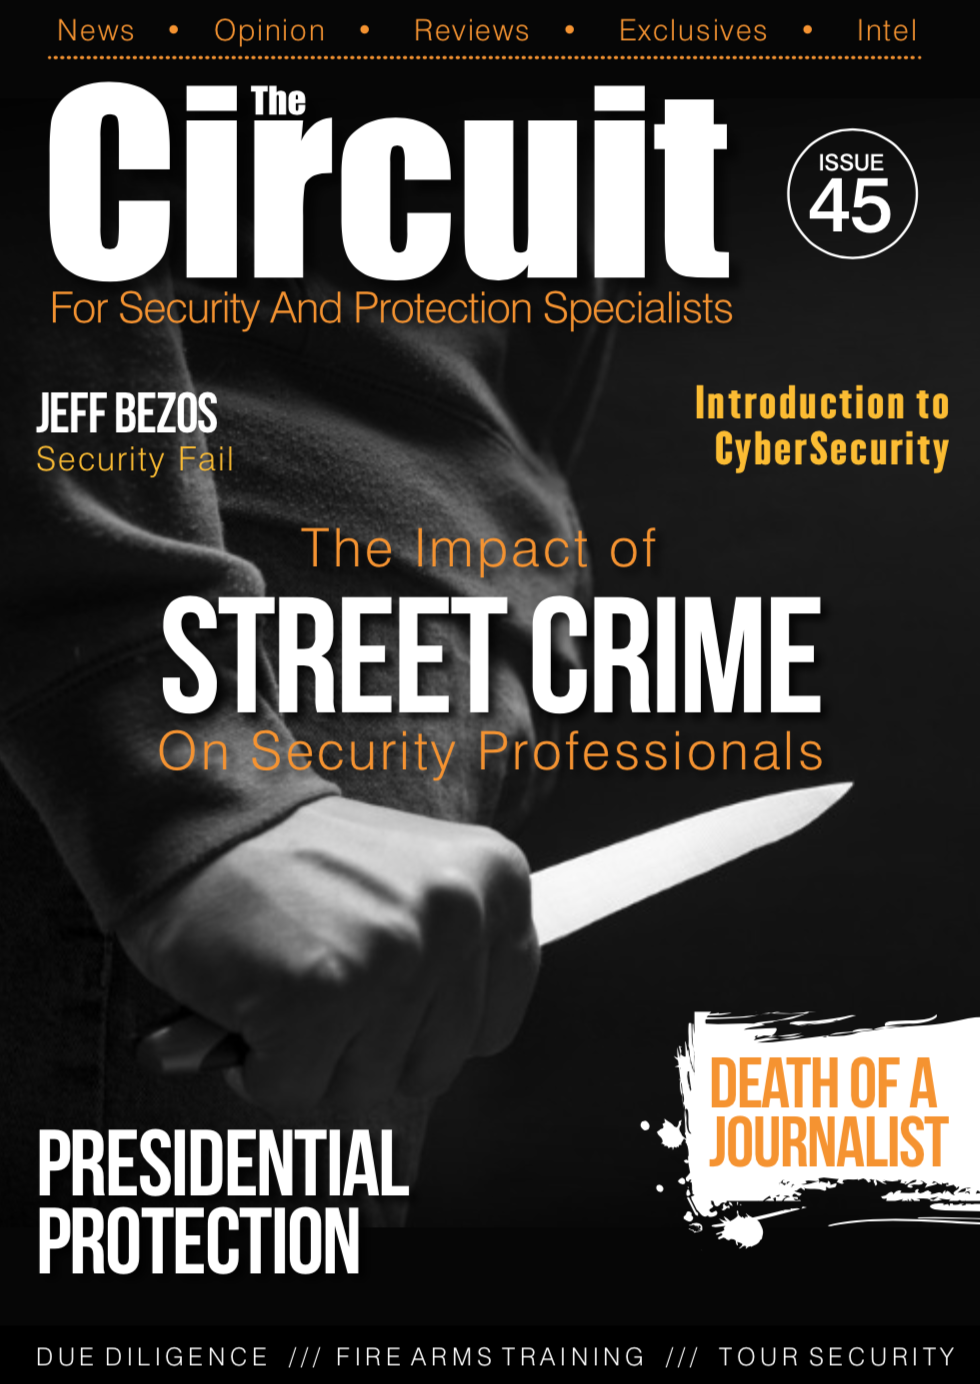 Cover of issue 45 Circuit Magazine